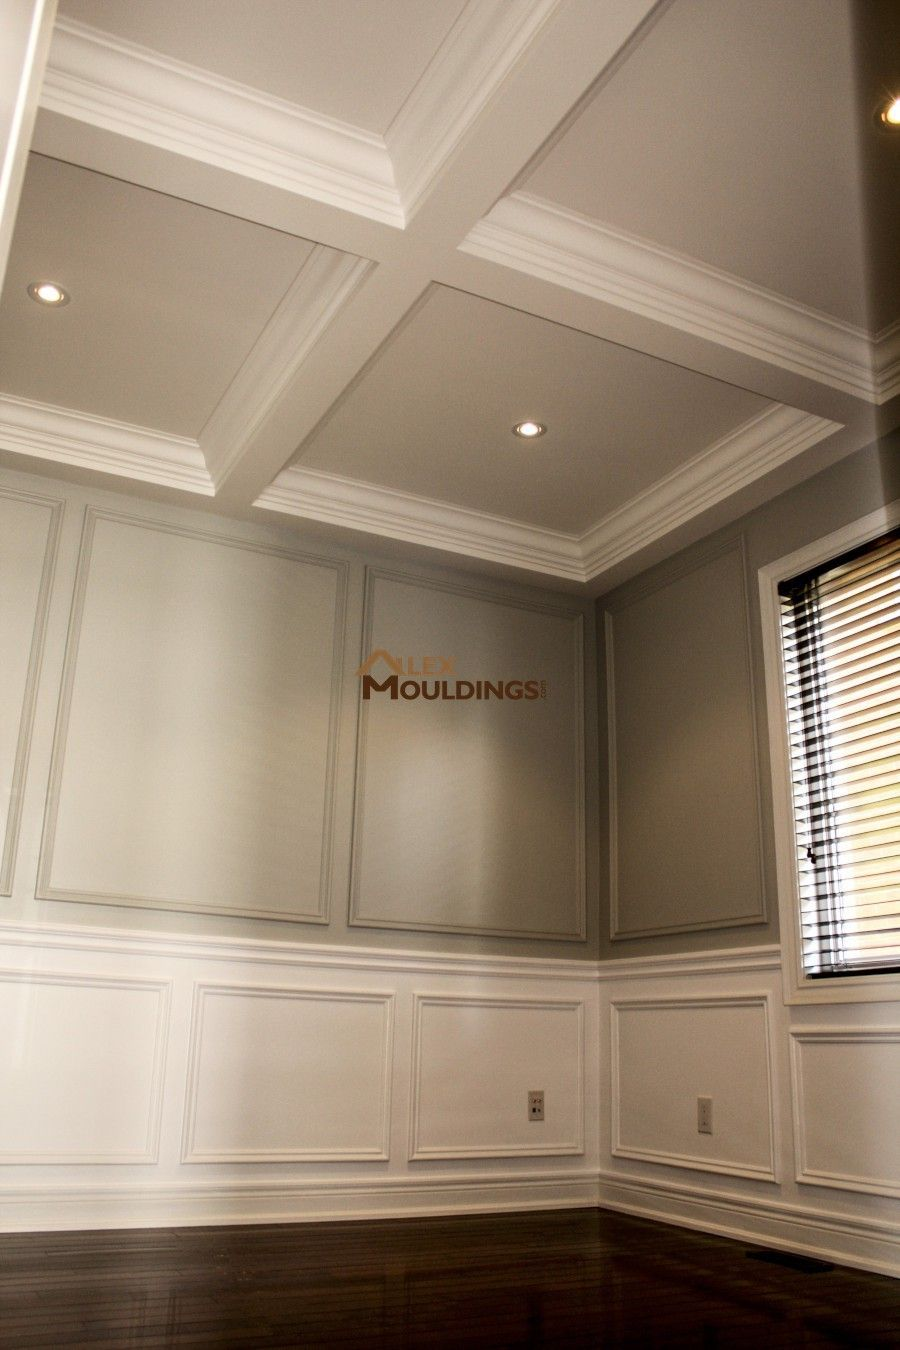 Waffle Ceiling together with wainscotings and wall trim | Trim ...